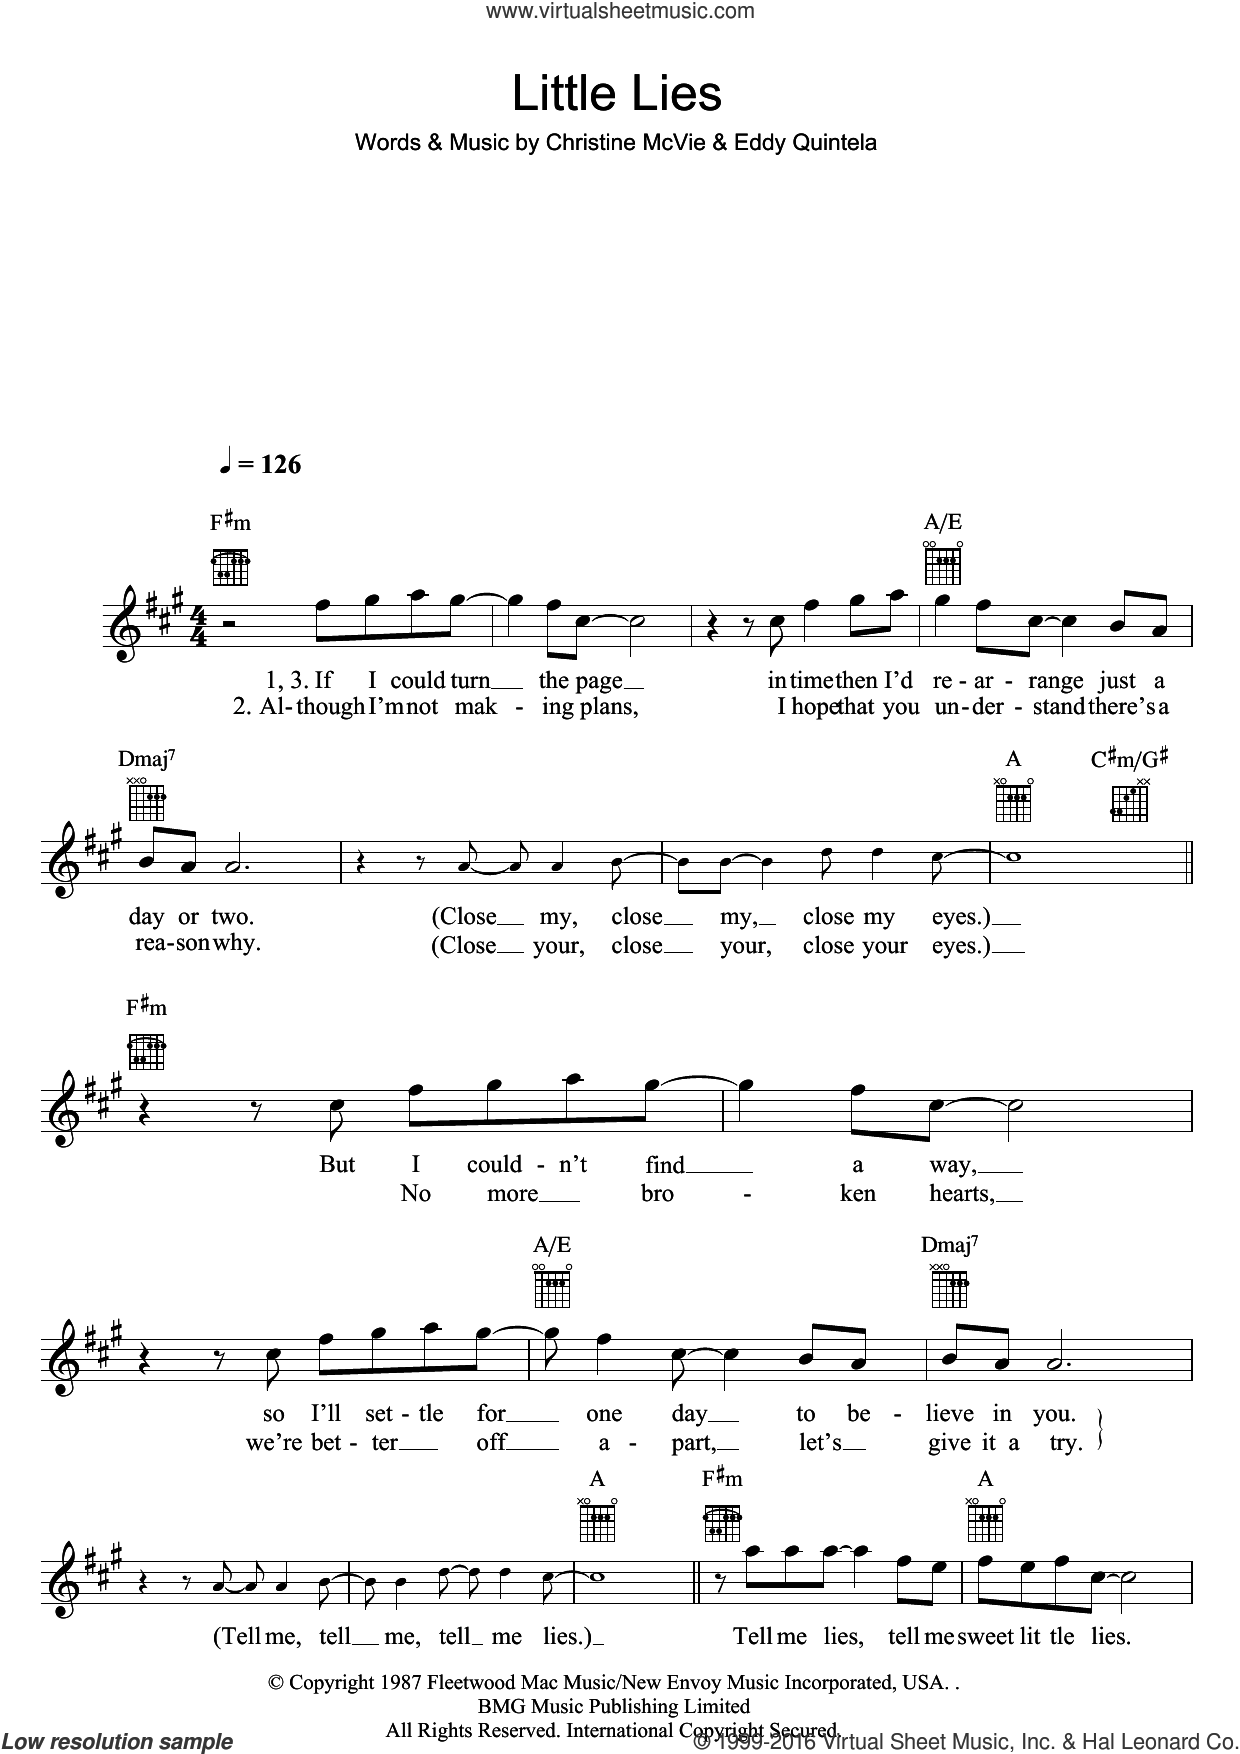 Little Lies sheet music for voice and other instruments (fake book) by Eddy Quintela, Fleetwood Mac and Christine McVie. Score Image Preview.